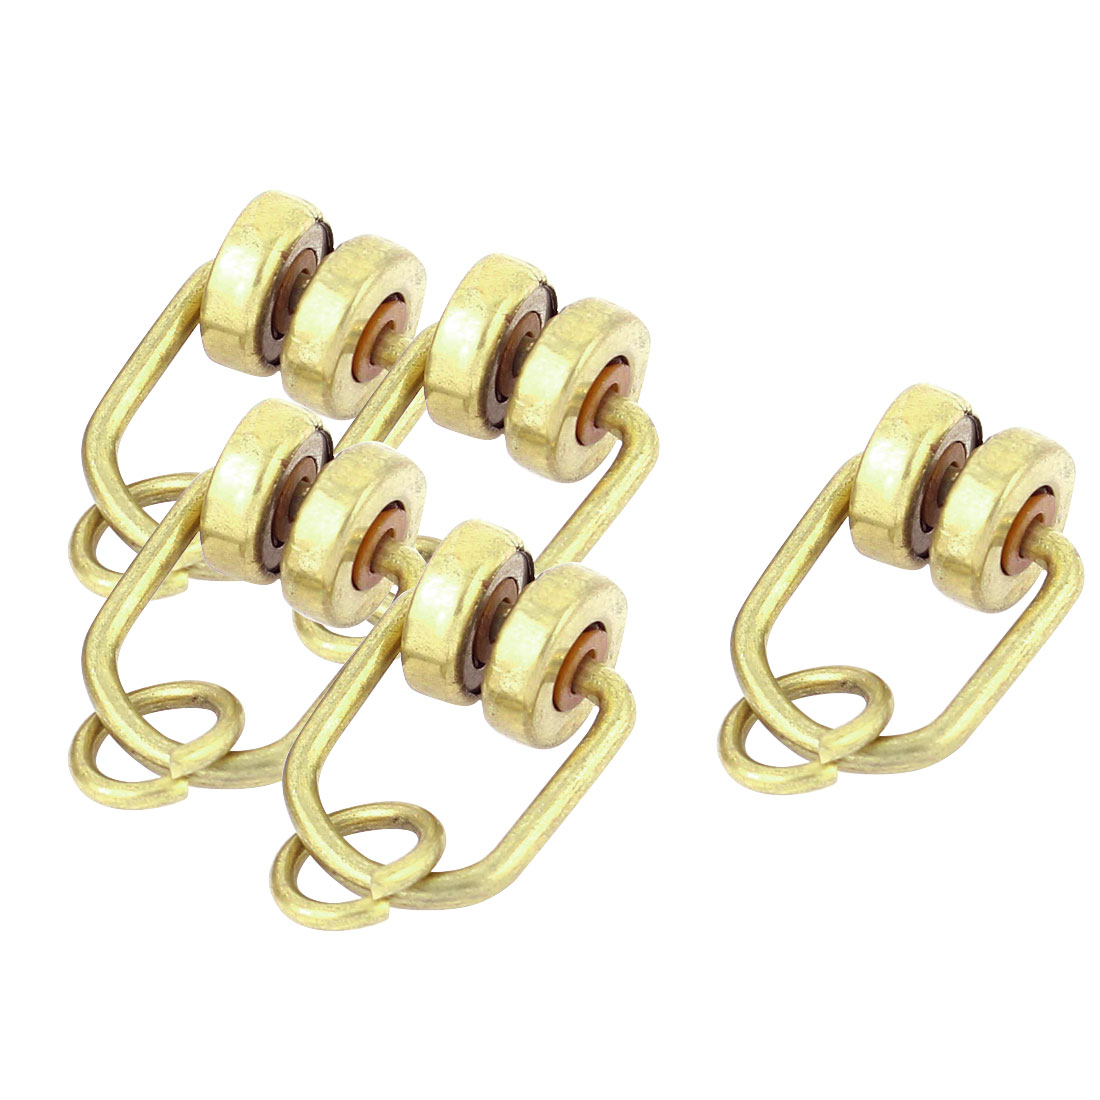 Bronze Tone Brass 11mm Dia Wheel Curtain Track Rail Runners Hanging Gliders 5pcs